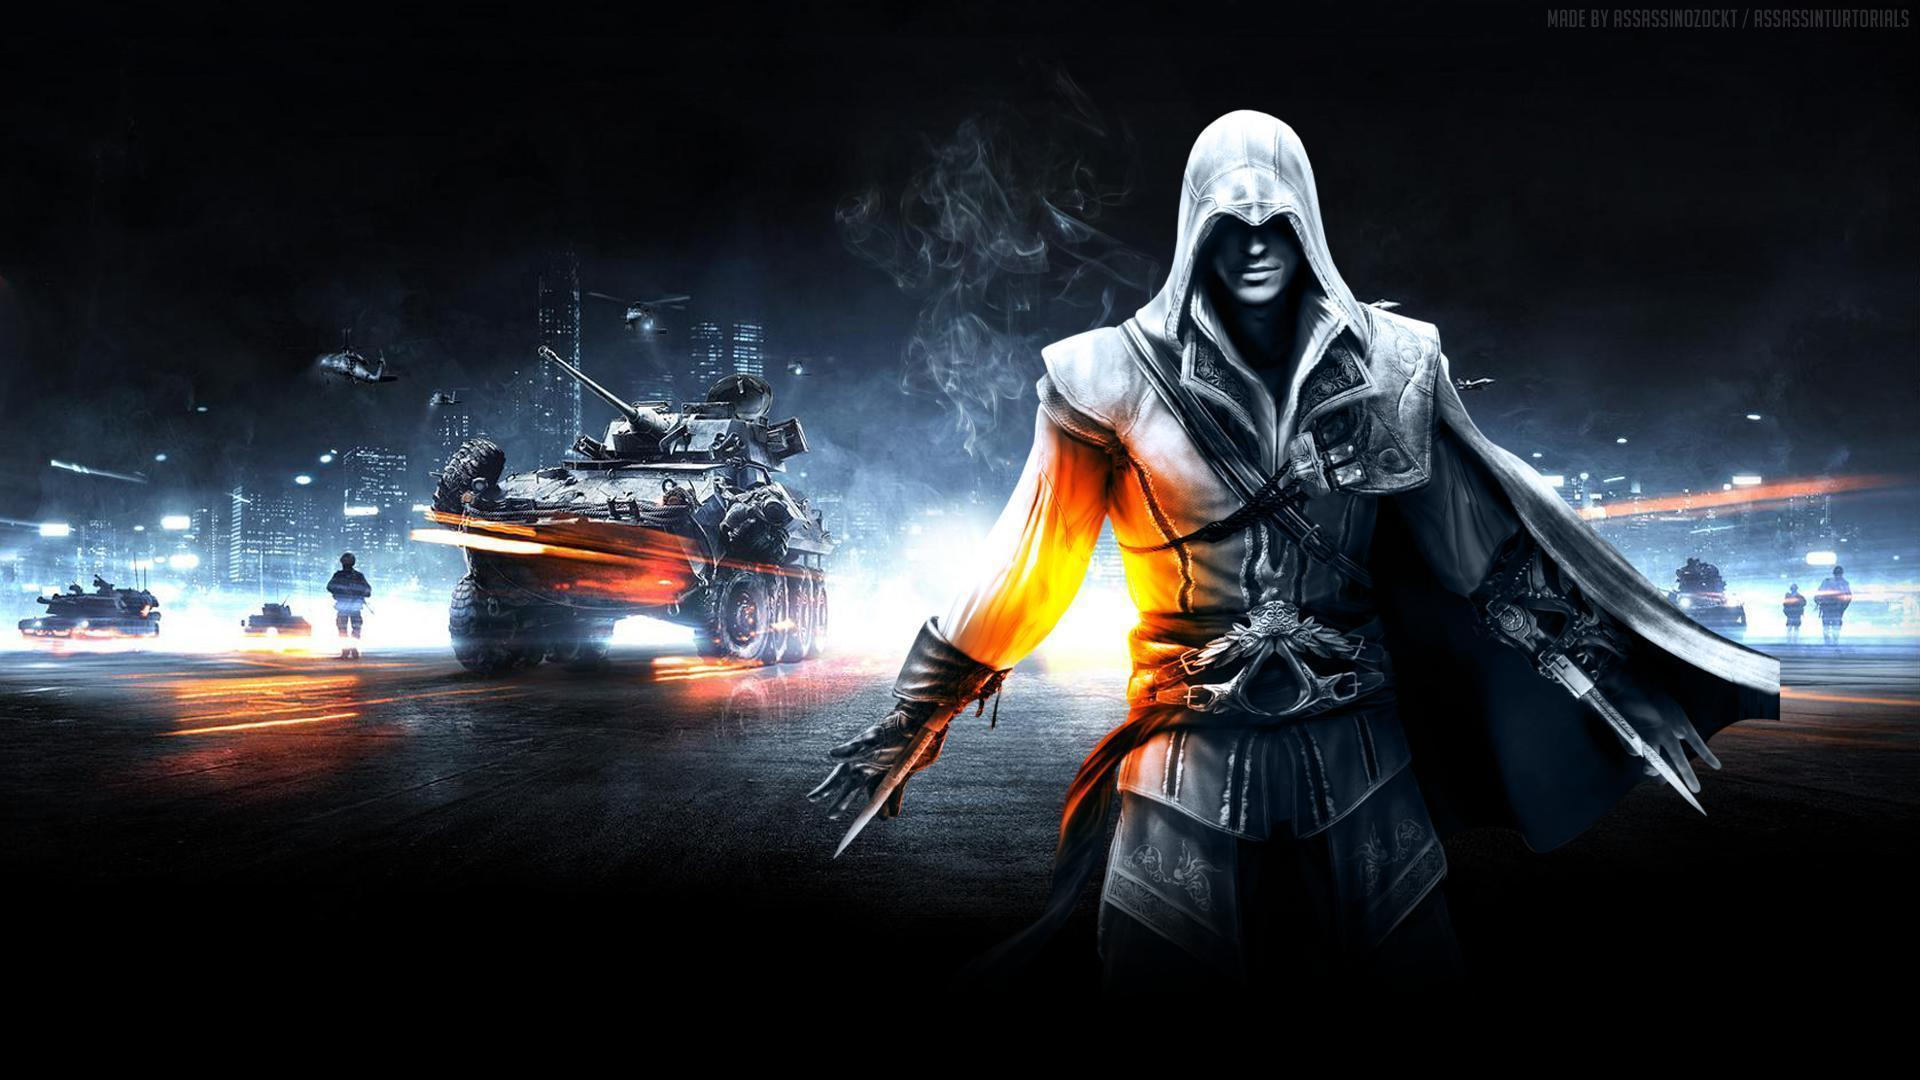 Video Game Backgrounds 1920x1080